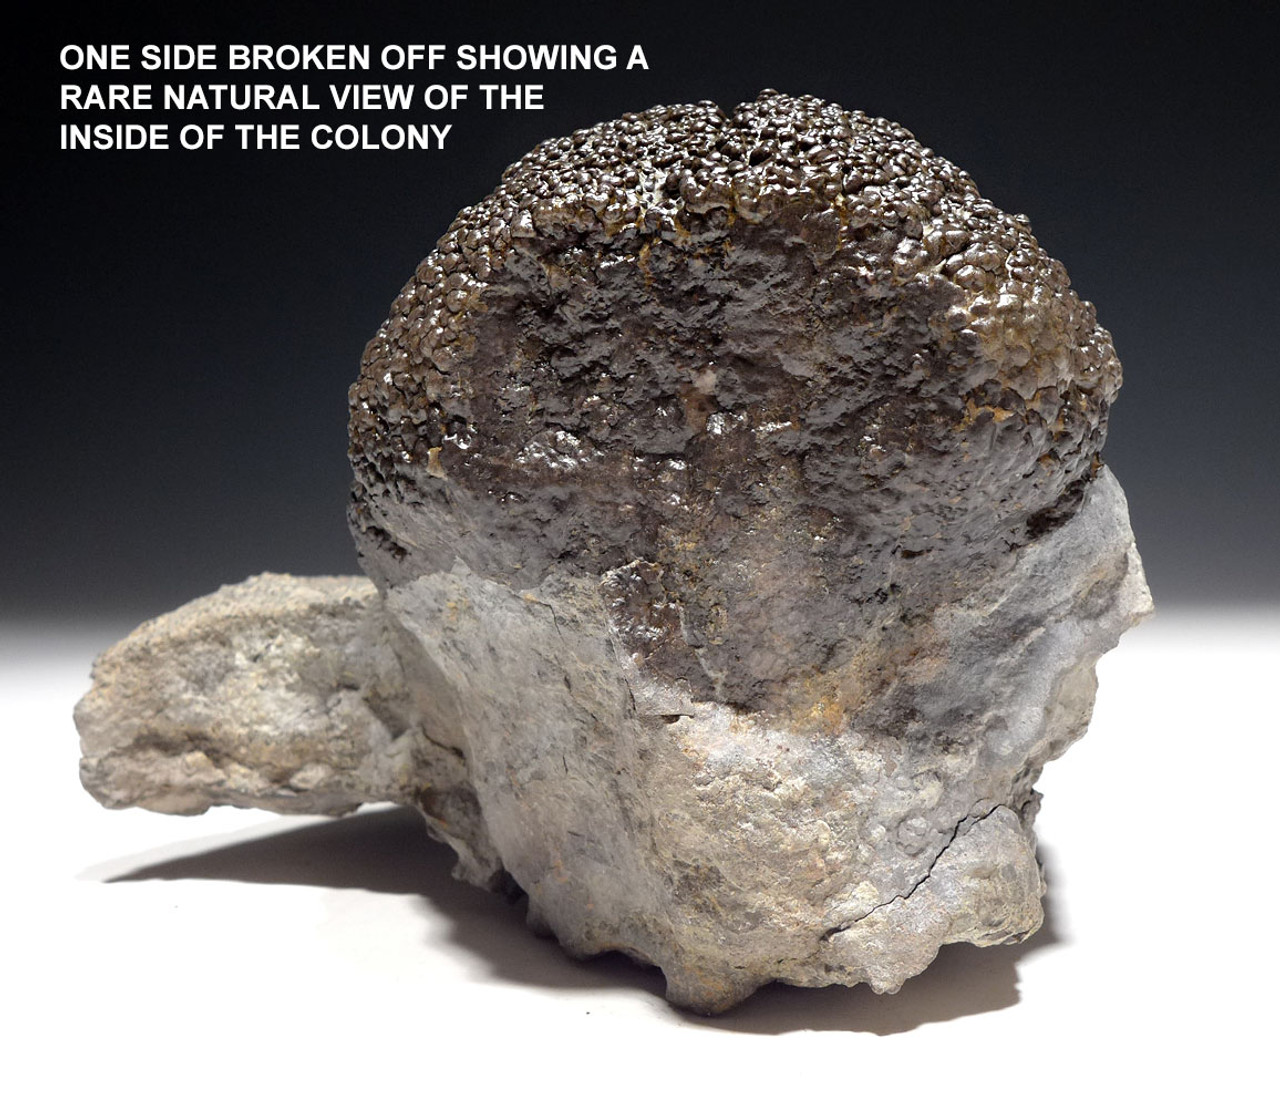 EXTREMELY RARE LARGE PERMIAN FOSSIL STROMATOLITE BACTERIA COLONY IN NATURAL FORM *STX611